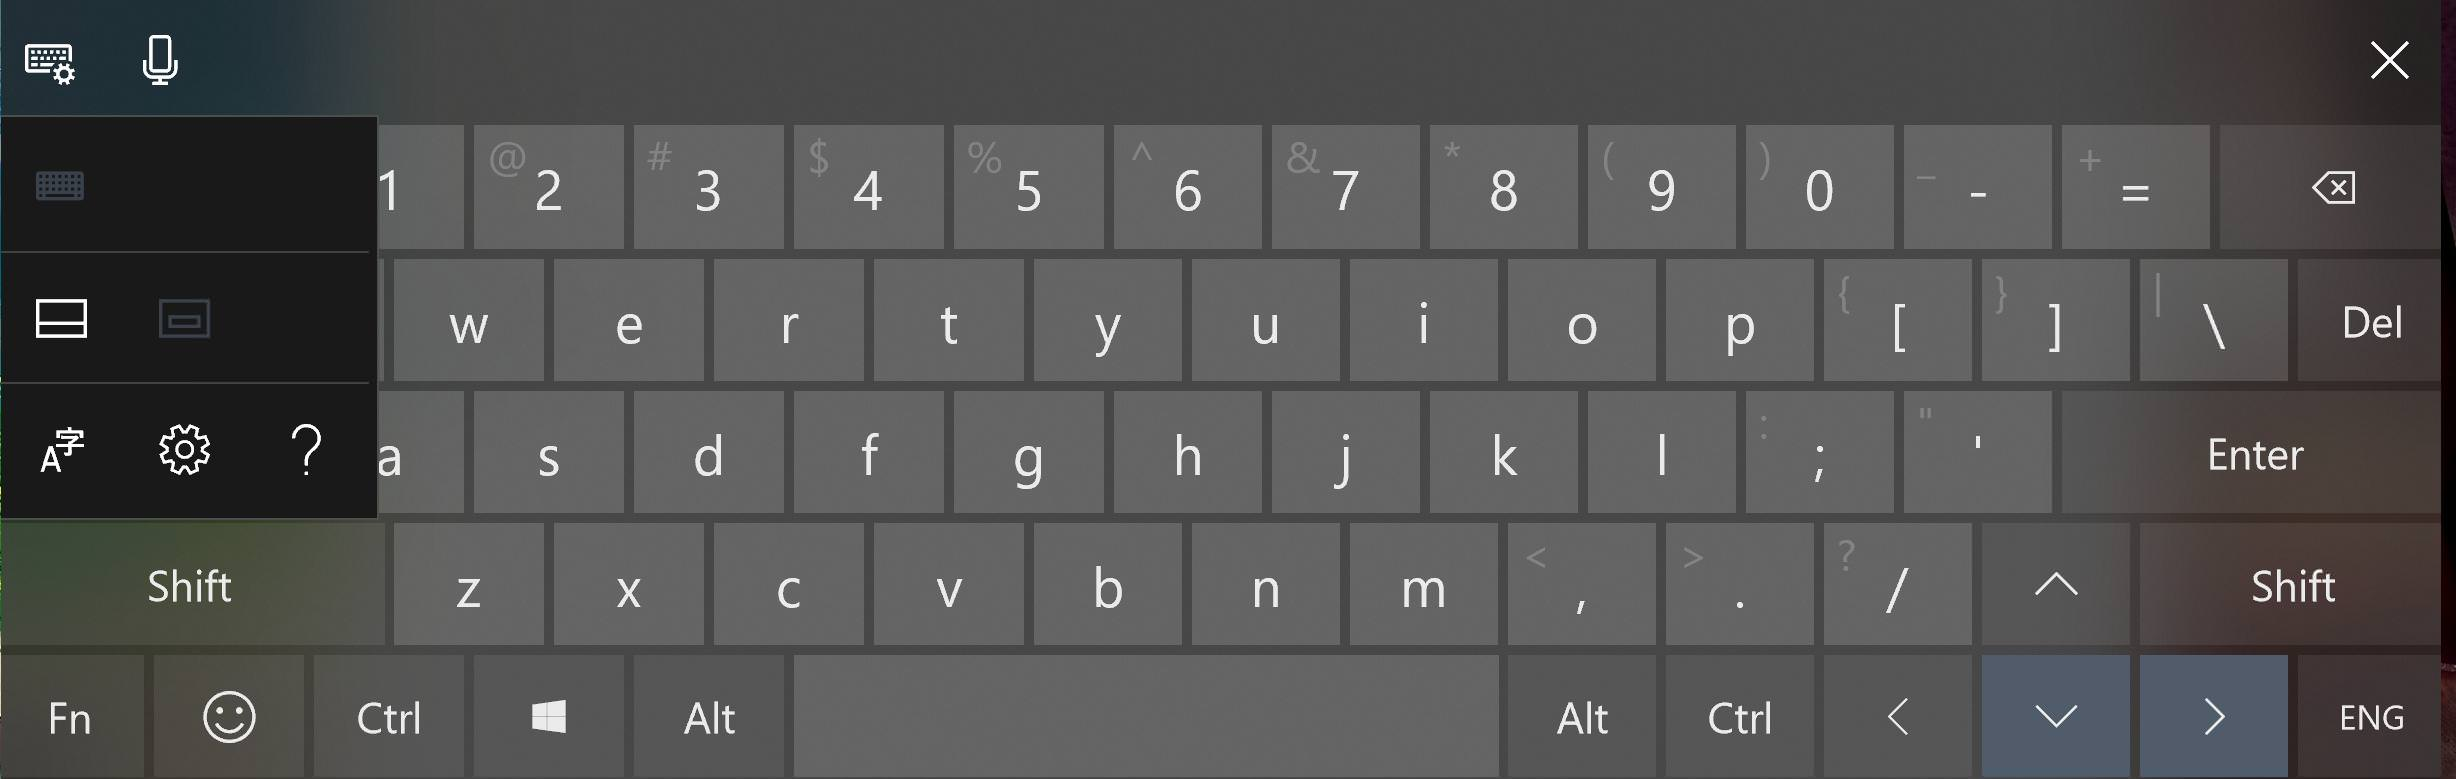 Creating a custom touch keyboard layout for Windows 10 (1803